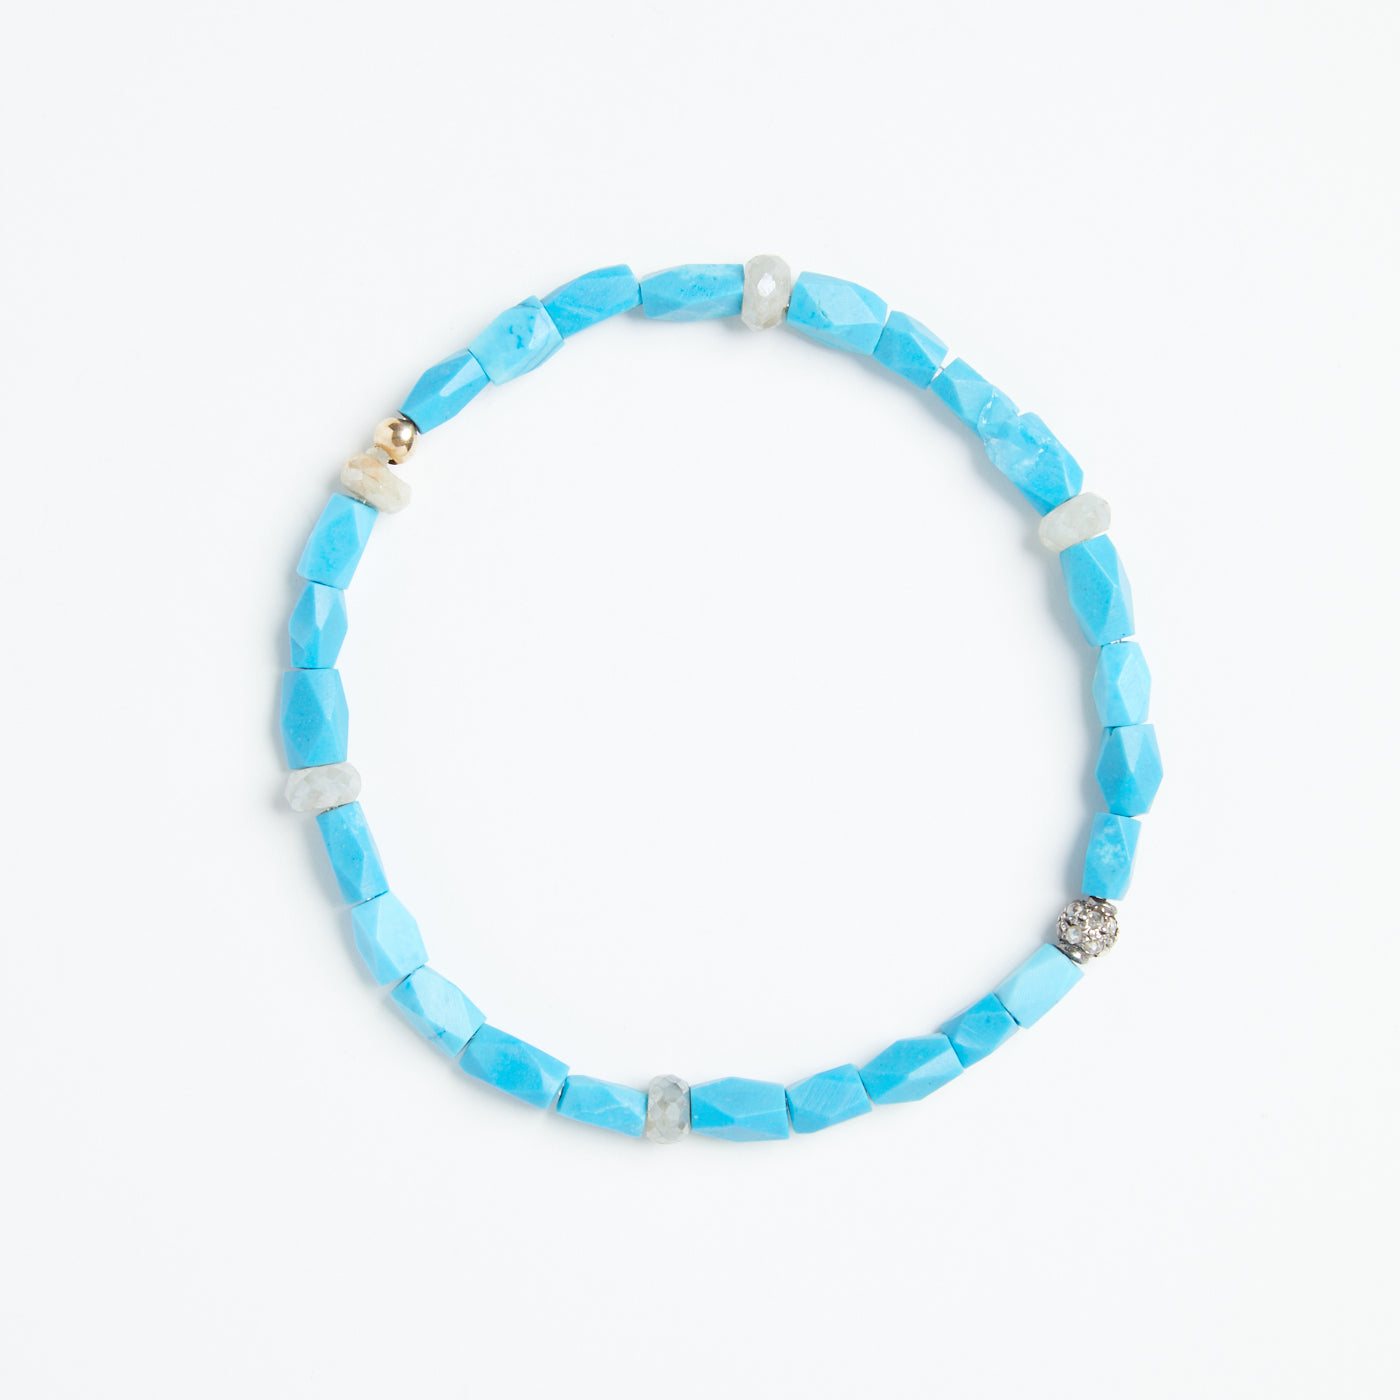 Turquoise, White Sapphire with Pave Diamond Bracelet